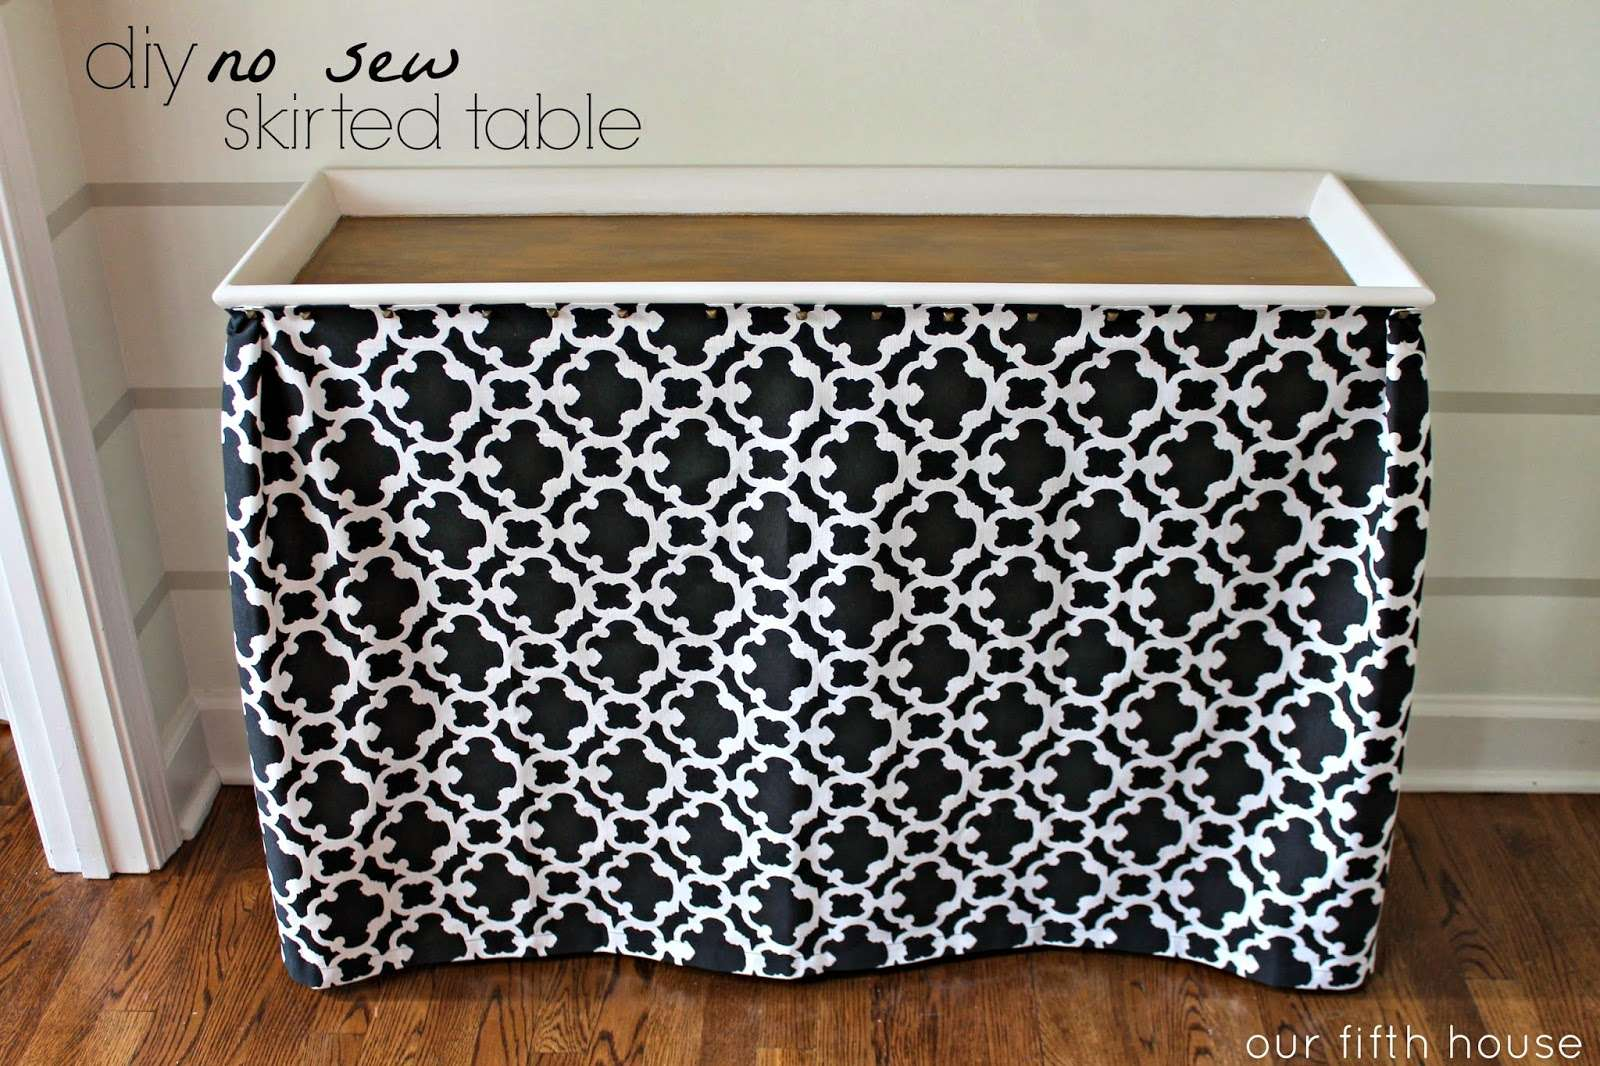 Our Fifth House Diy Sew Skirted Table